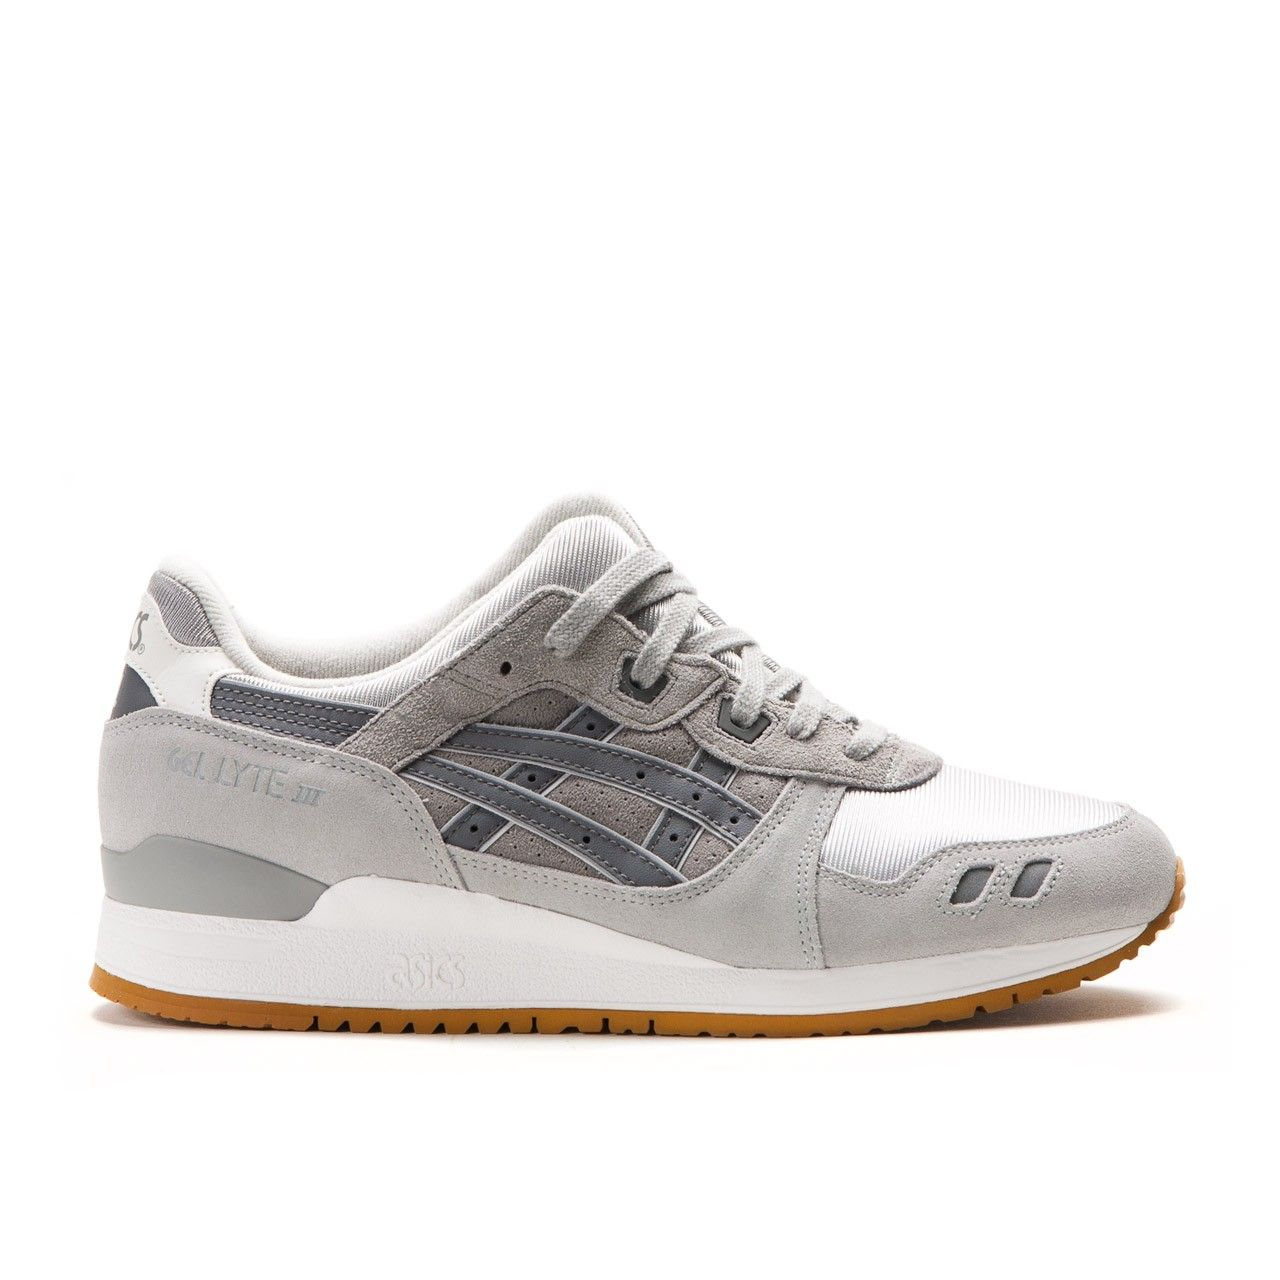 asics gel lyte iii trainers with mesh detail